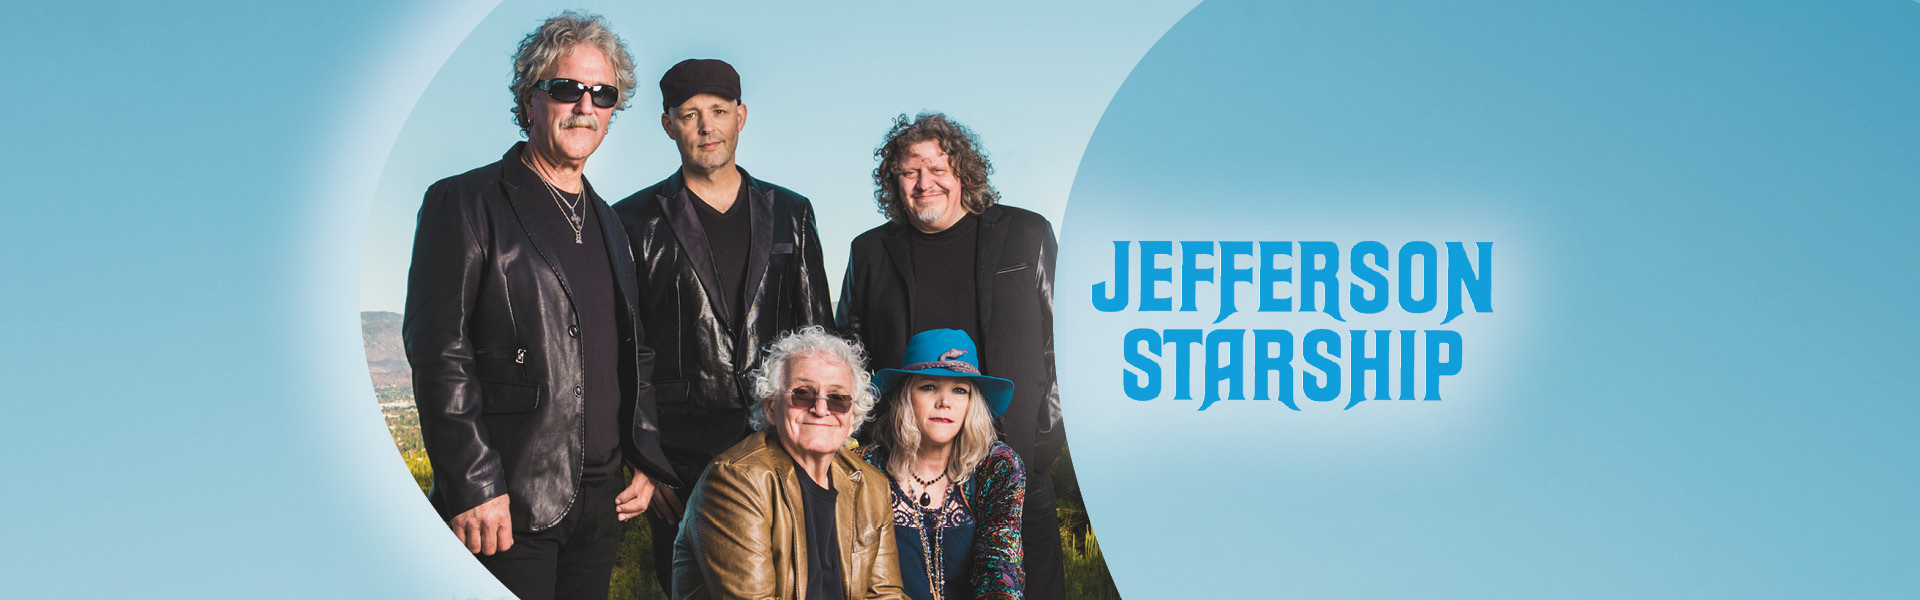 Picture of music group Jefferson Starship